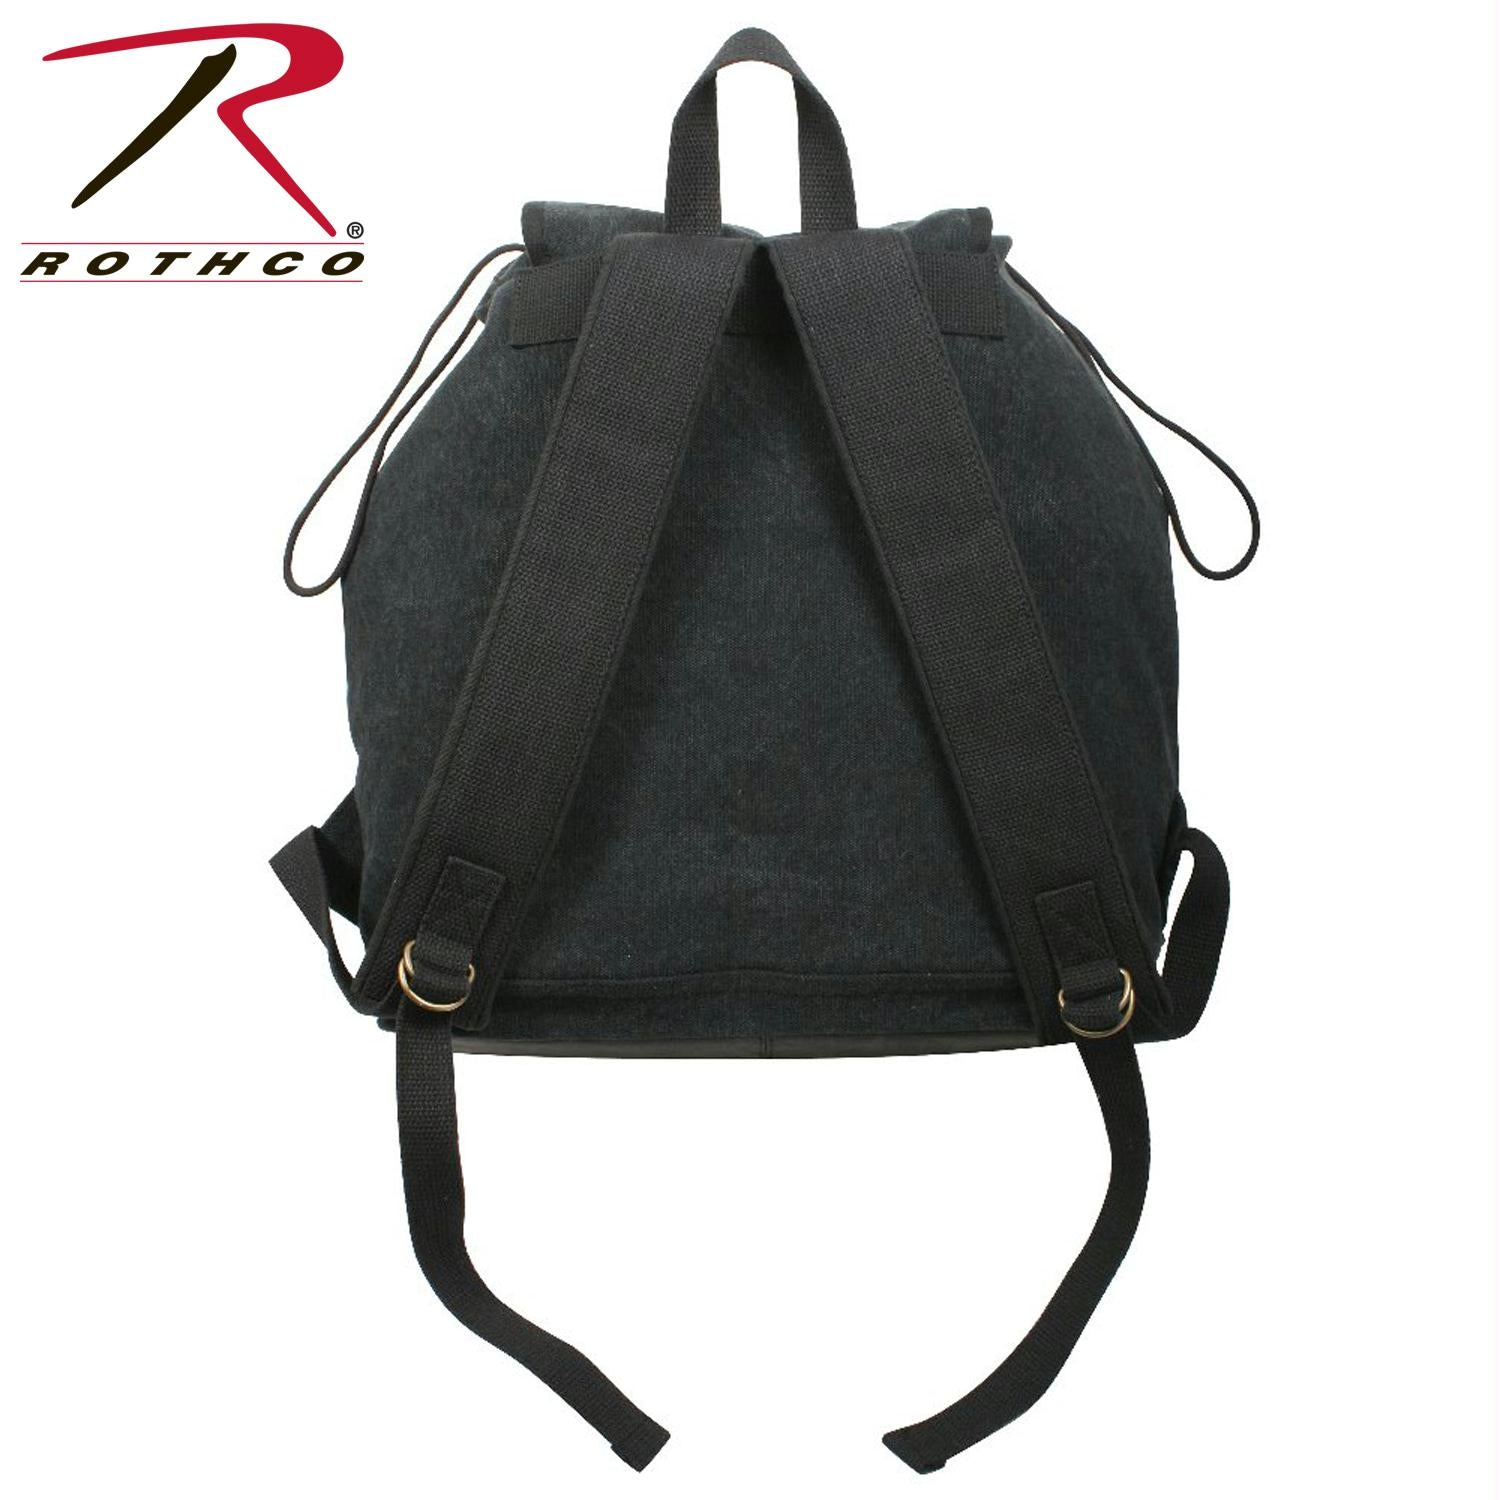 Rothco Vintage Canvas Wayfarer Backpack w/ Leather Accents - Black